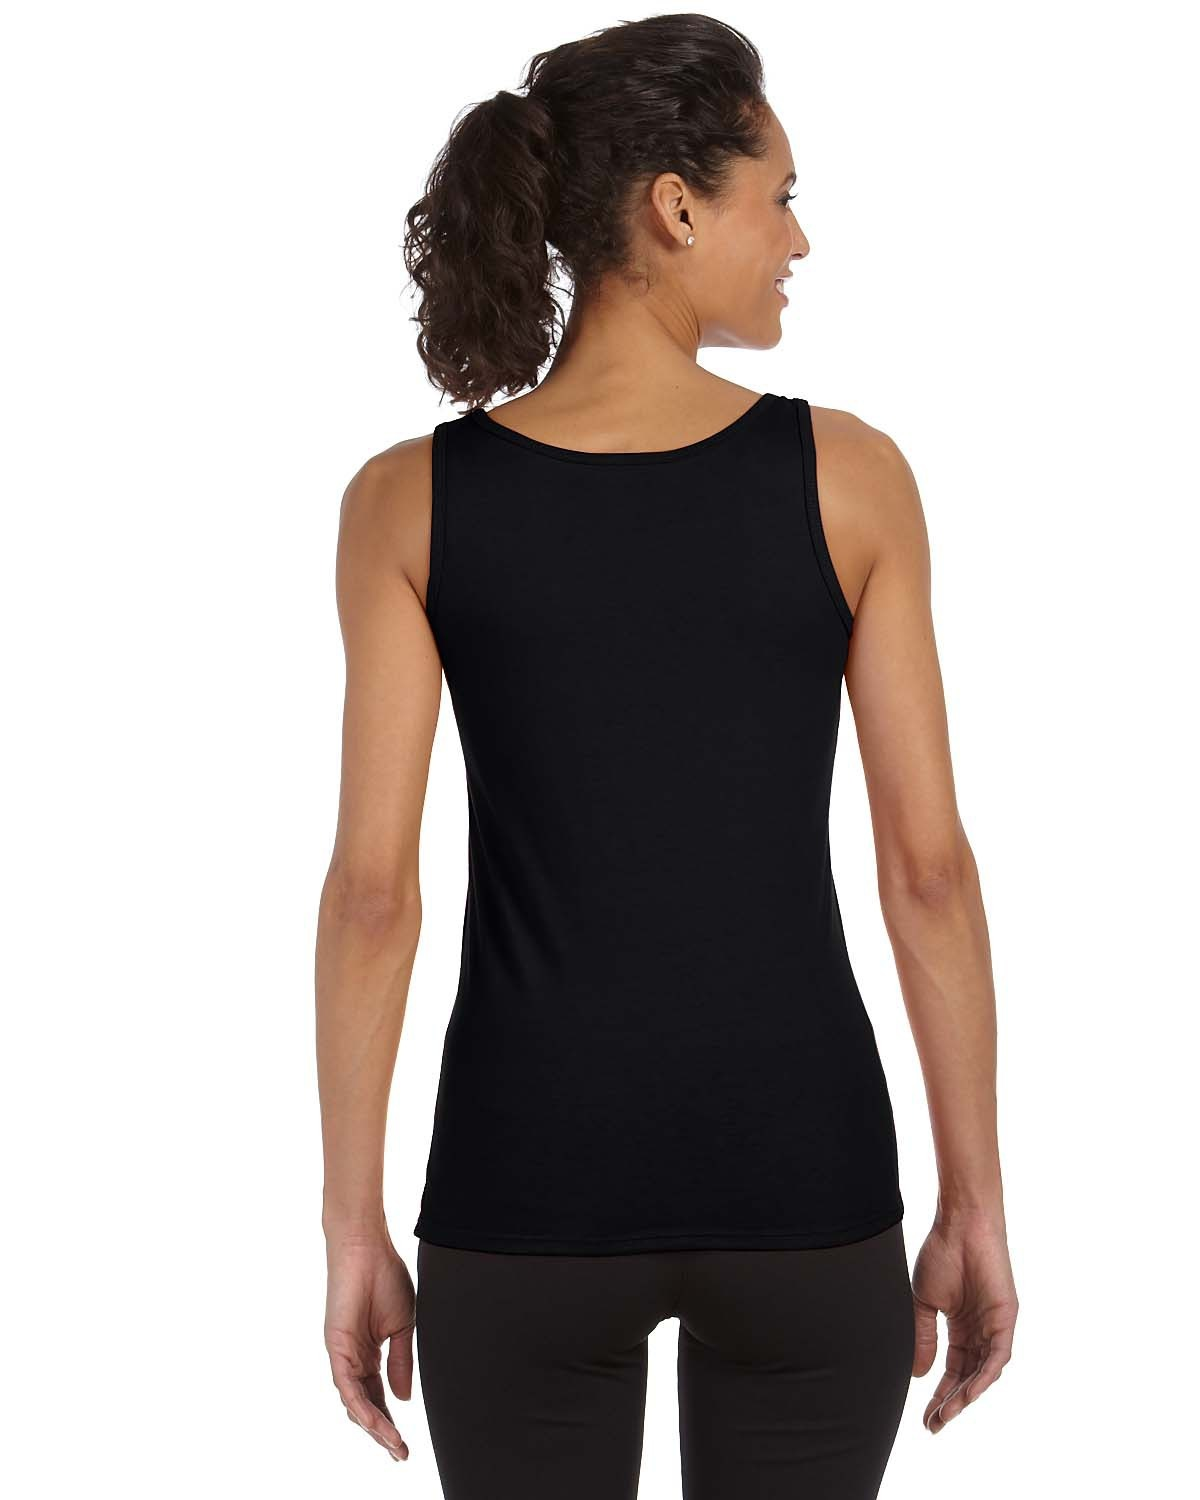 Shop for womens black top online at Target. Free shipping on purchases over $35 and save 5% every day with your Target REDcard.